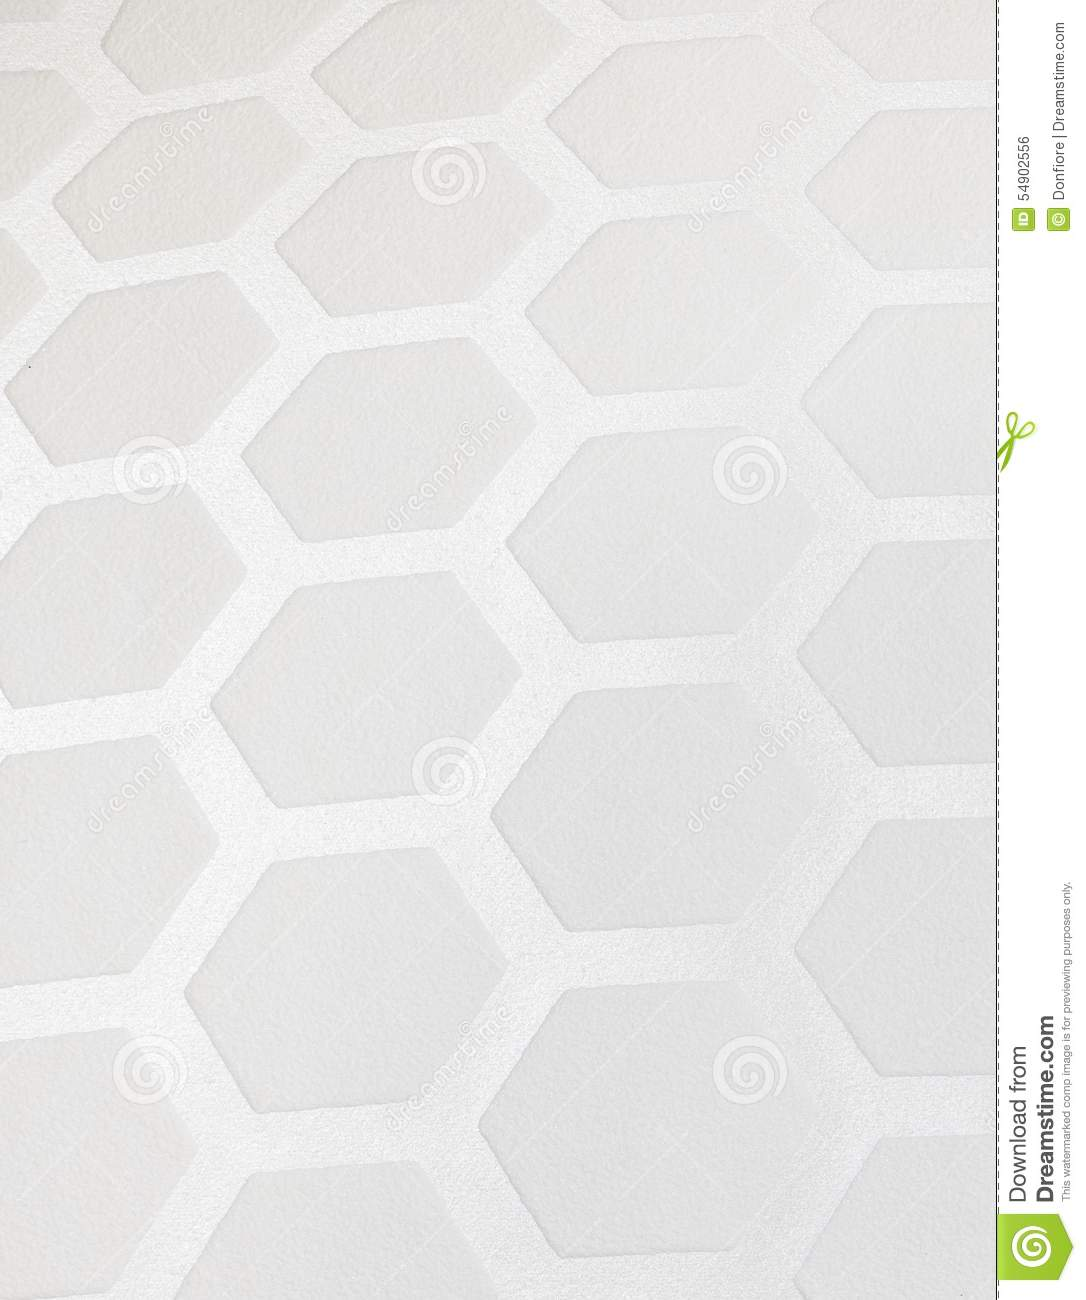 Fond Blanc De Papier Peint De Modèle D\'hexagone Photo stock - Image ...